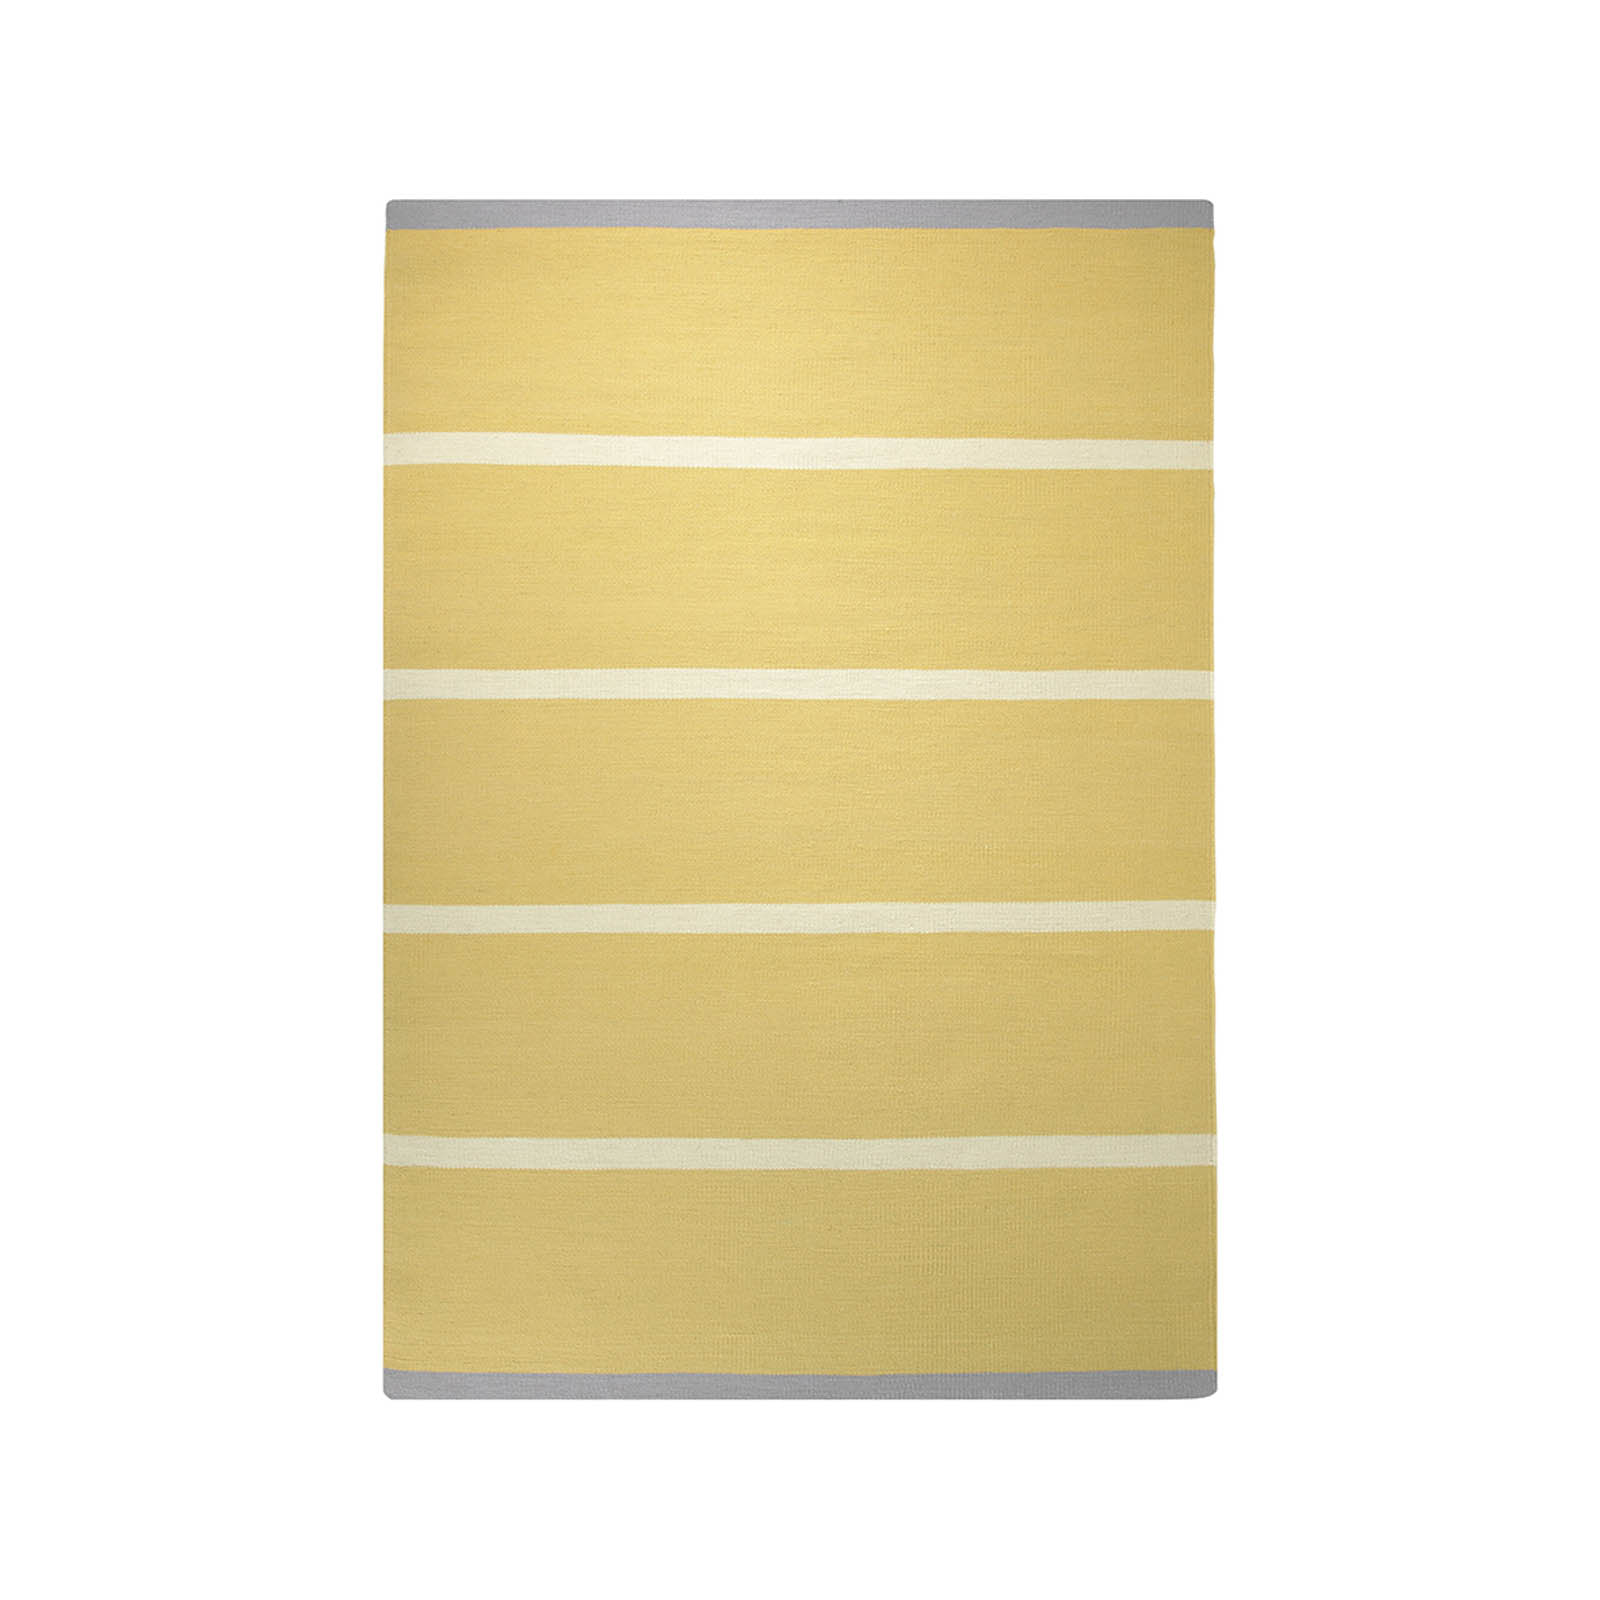 Esprit Simple Stripe Rugs 7017 05 Yellow